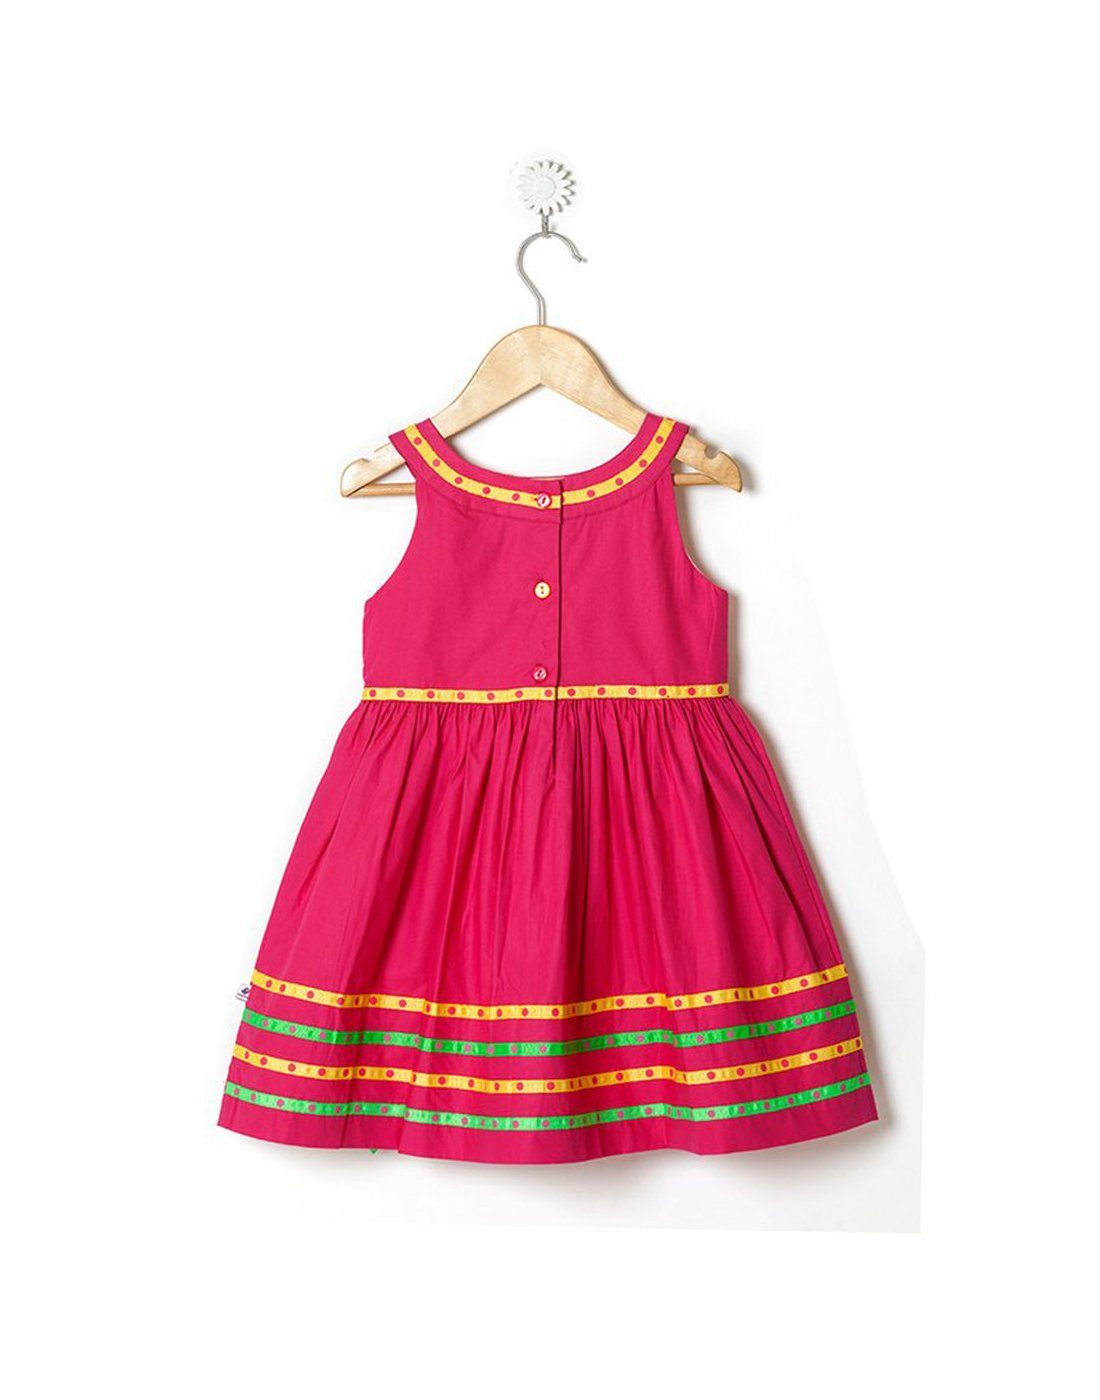 The Rhea - Sleeveless Flared Rani Pink Dress with Yellow & Green Polka Ribbons